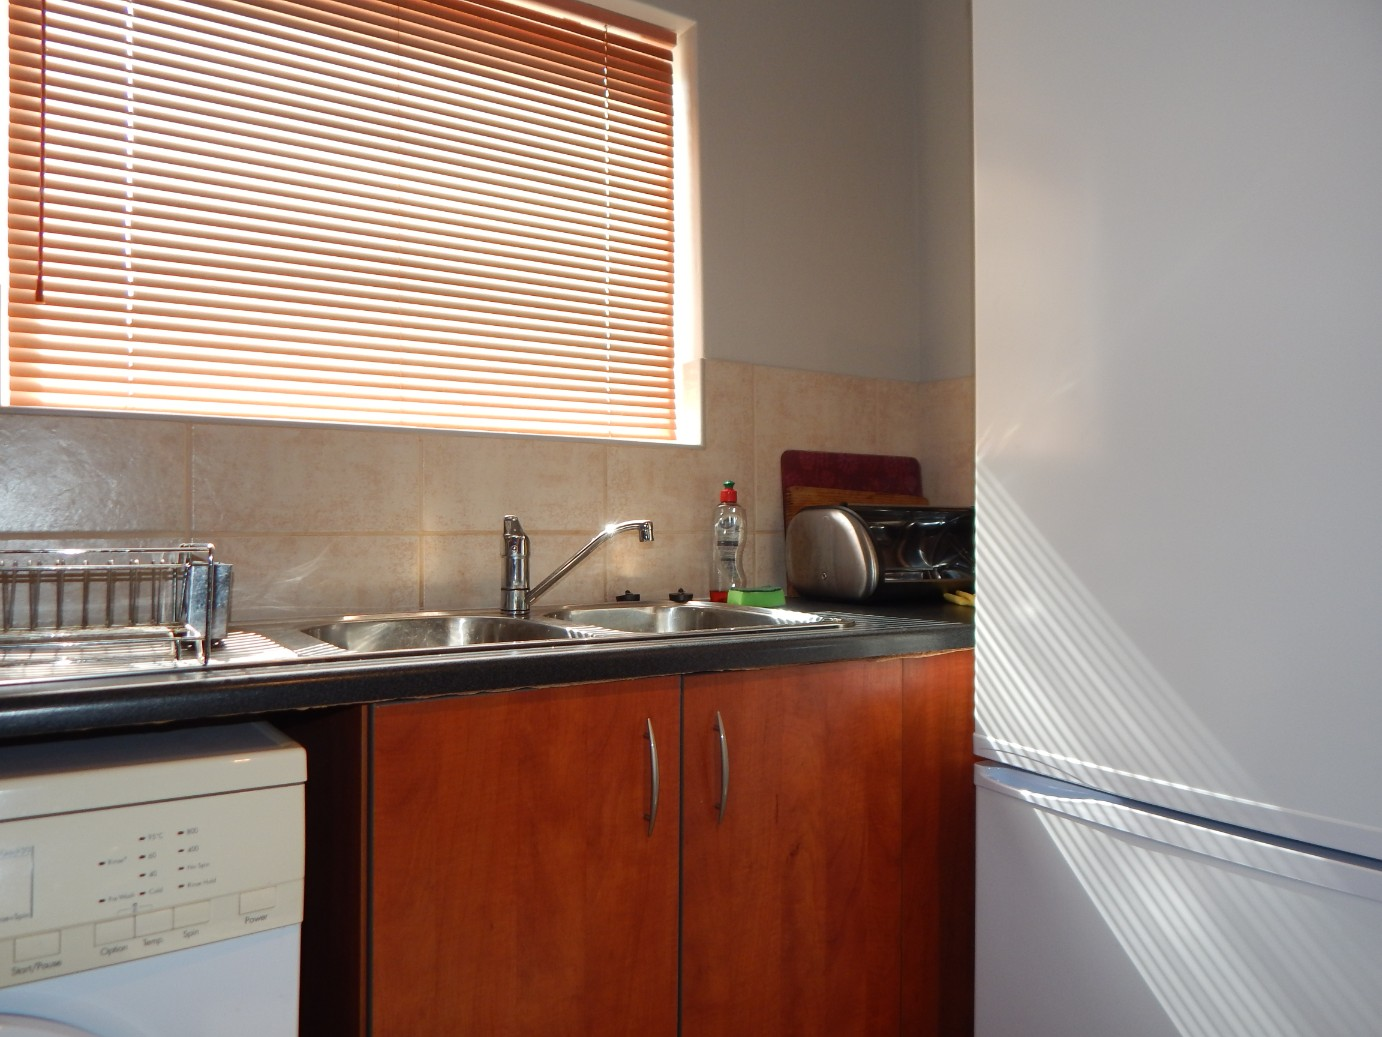 3 Bedroom Apartment for sale in Diaz Beach ENT0080239 : photo#7